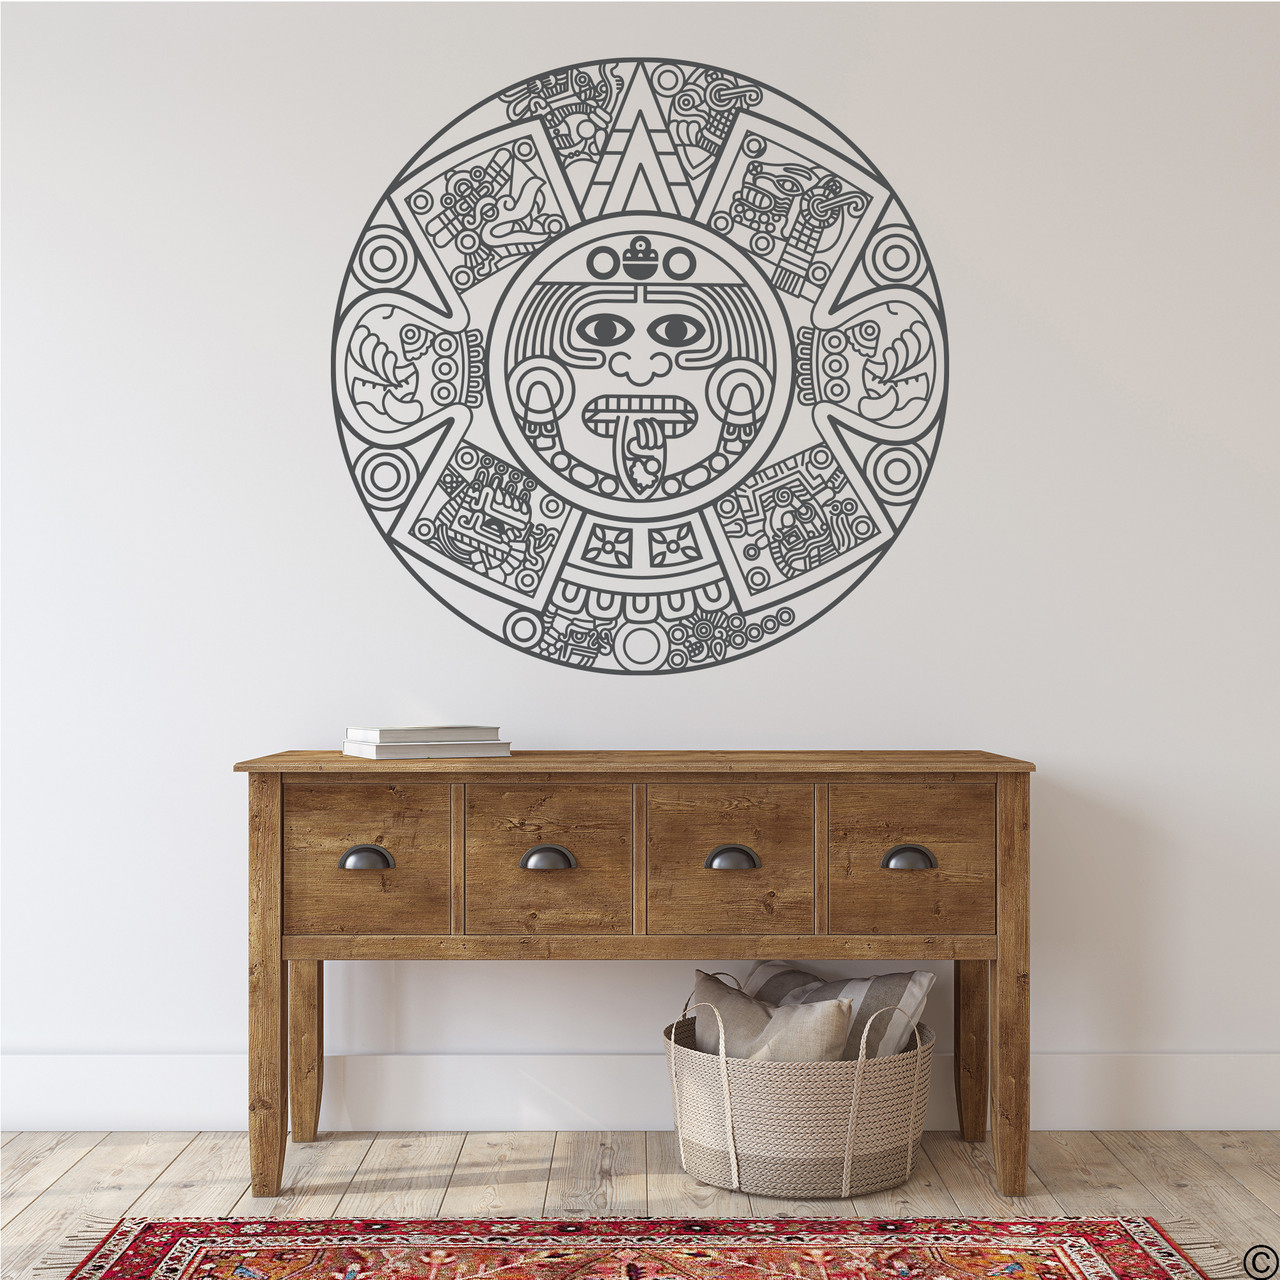 The Aztec Calendar wall decal in black vinyl color.